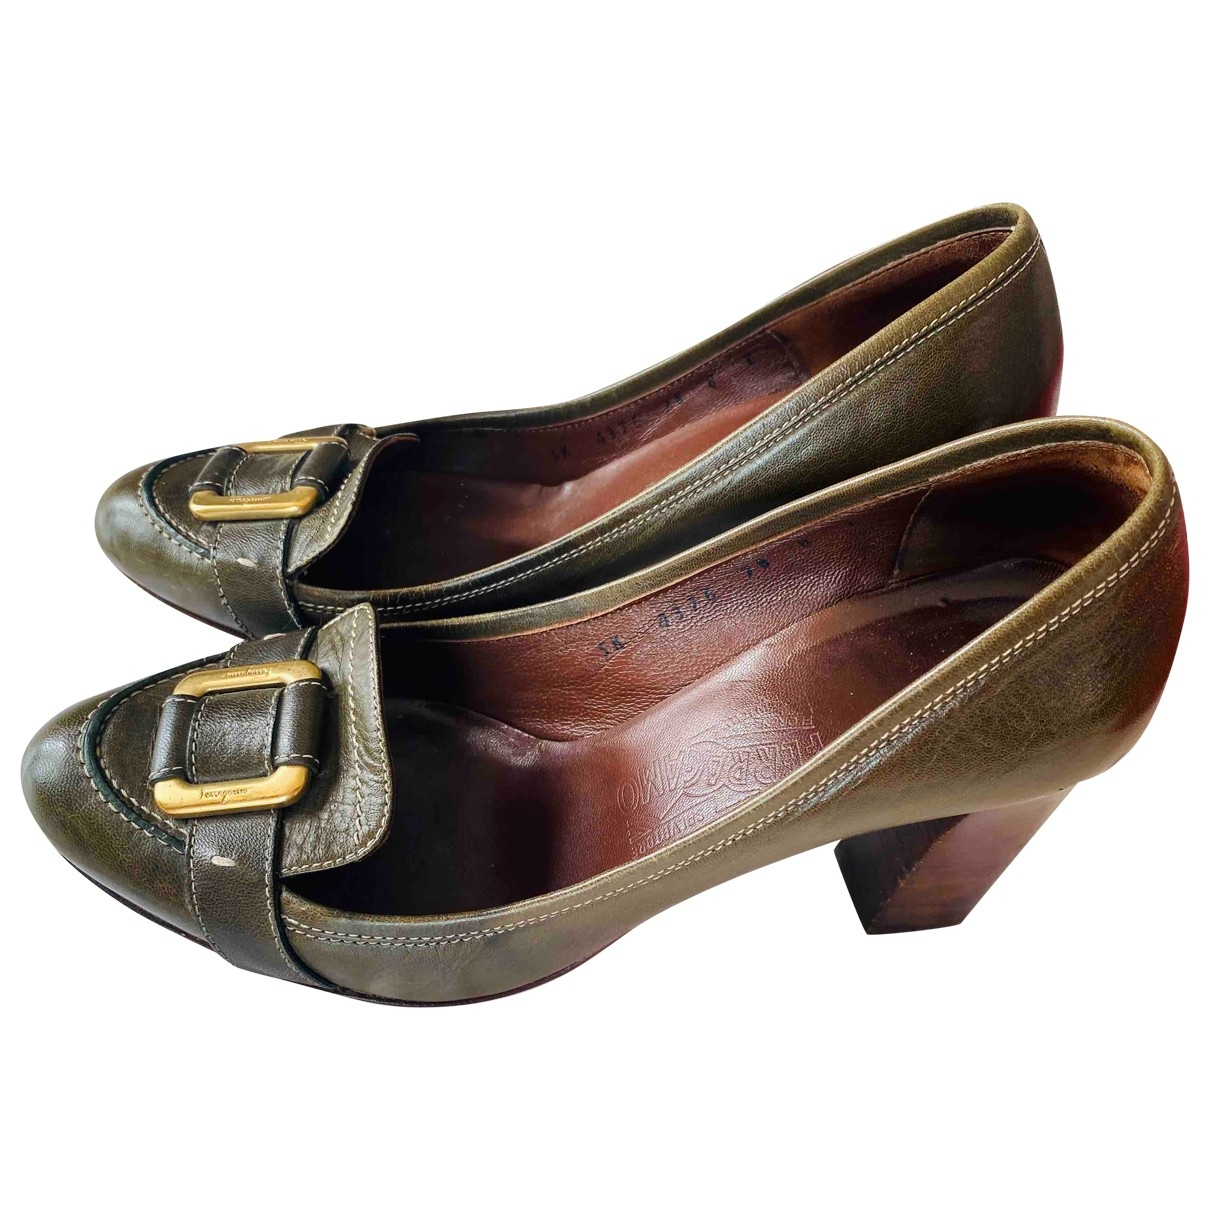 Salvatore Ferragamo \N Green Leather Heels for Women 38 EU